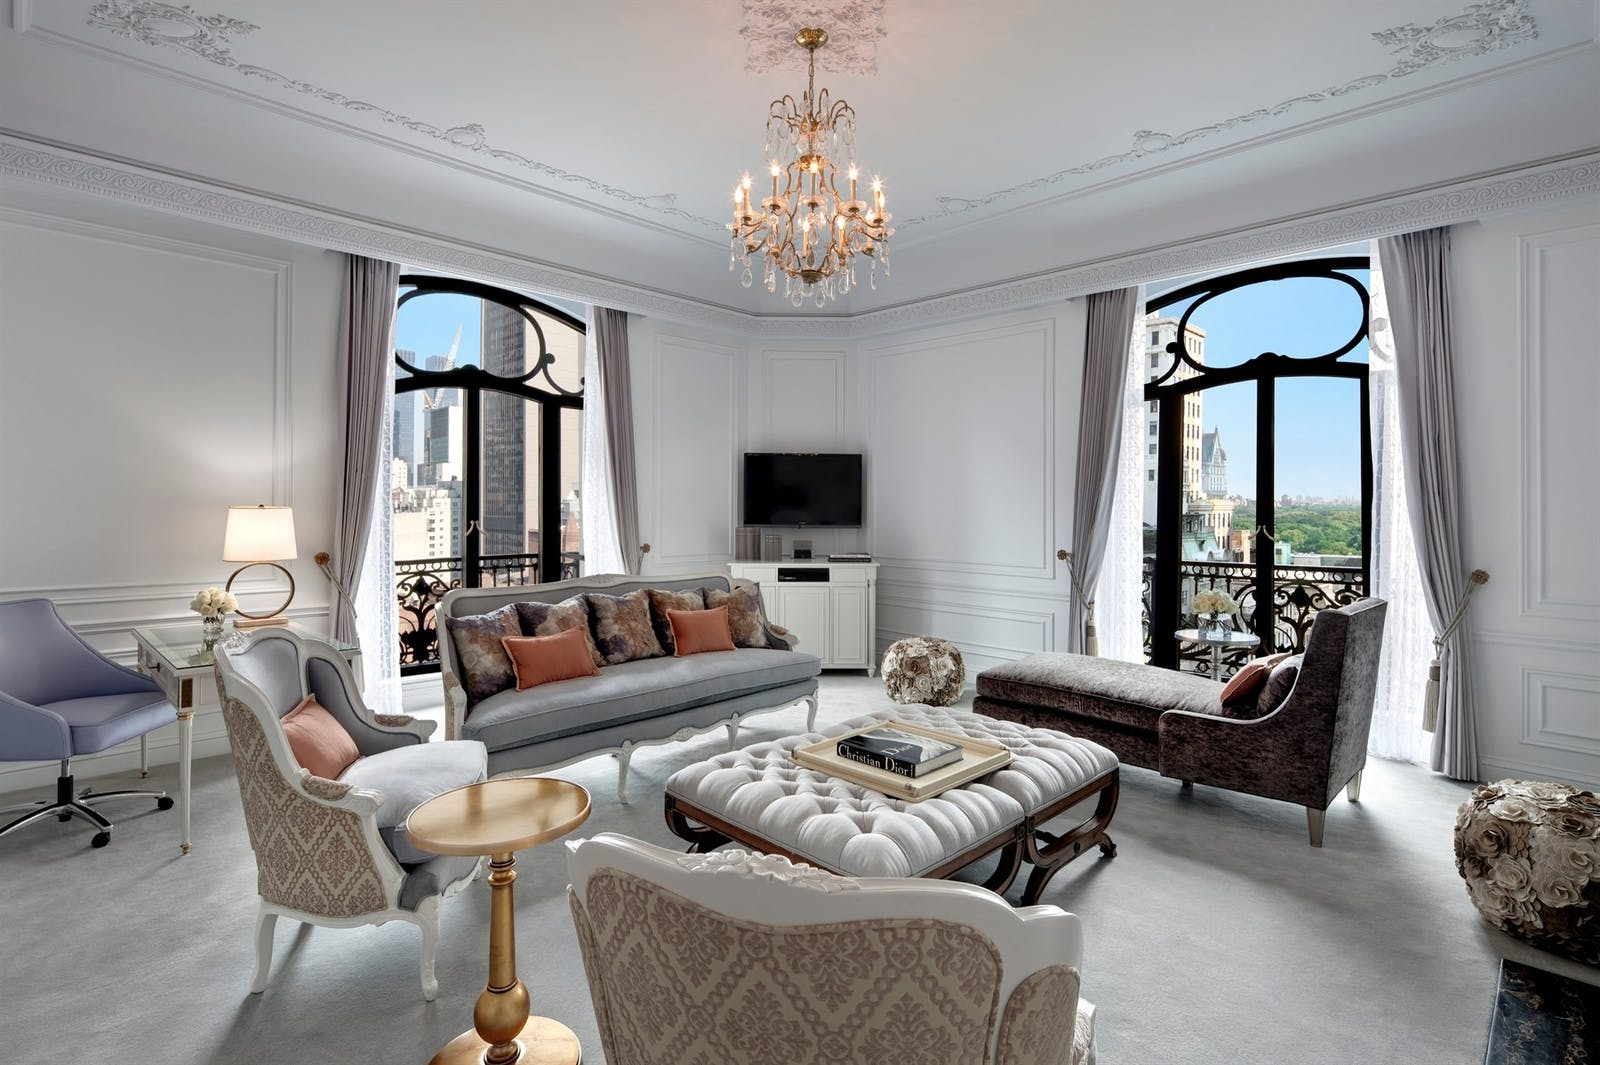 dior suite living room at the st regis new york